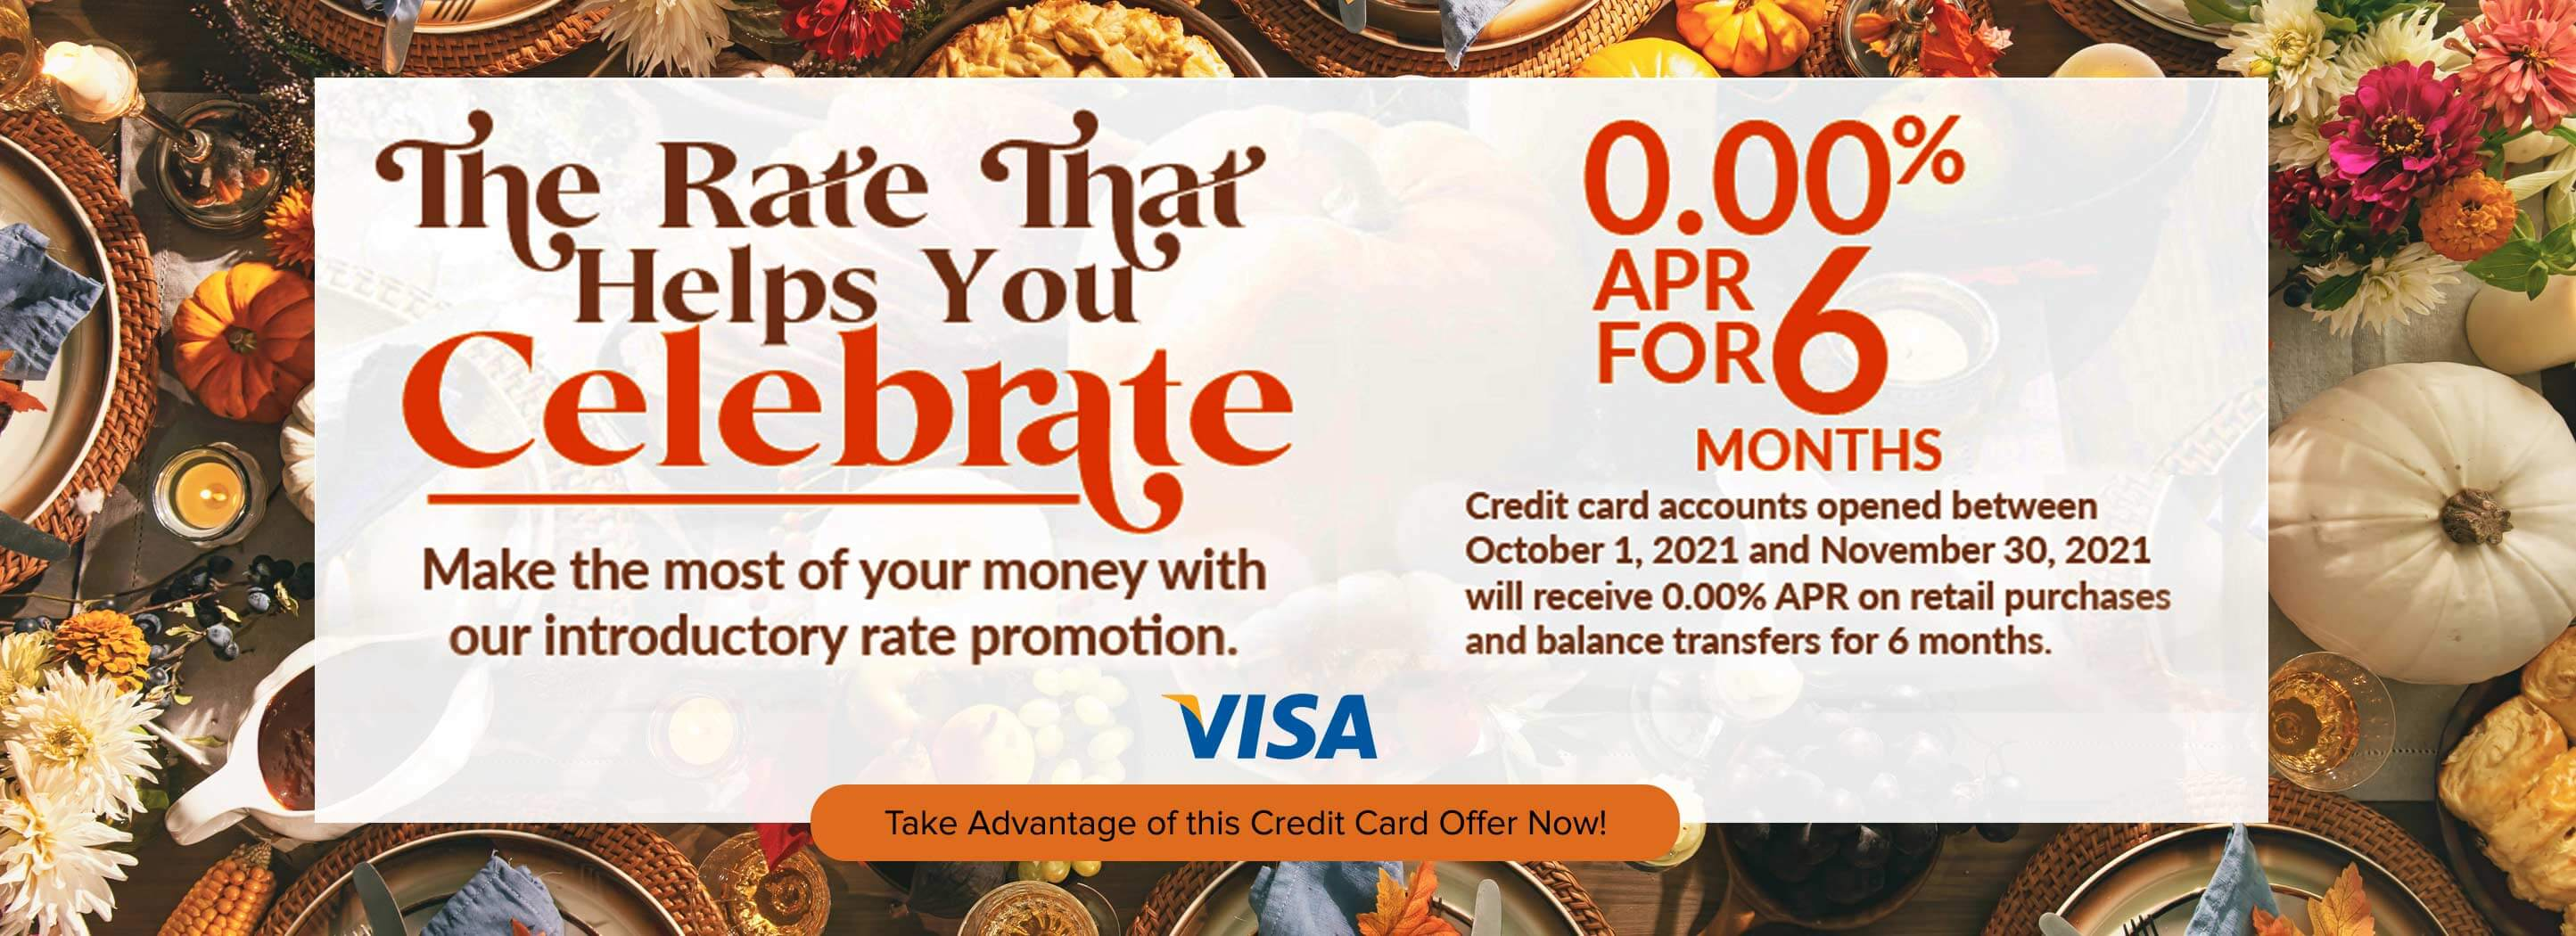 Visa - the rate that helps you celebrate. Make the most of your money with out introductory rate promotion. 0.00% APR for 6months. Take advantage of this credit card offer now.